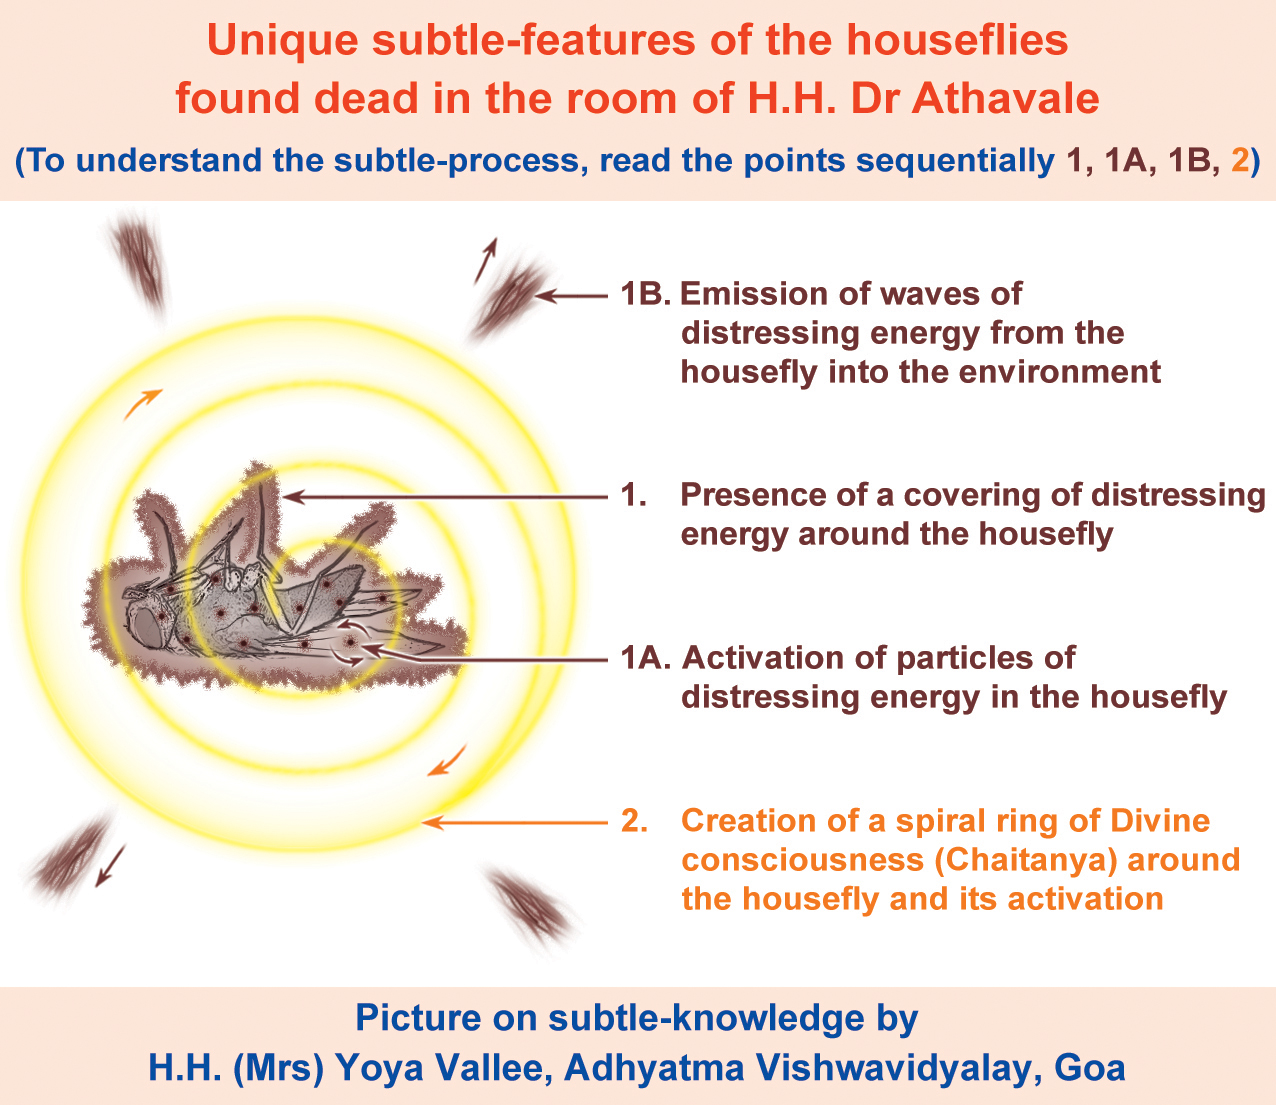 Houseflies found dead in the room of H.H. Dr Athavale